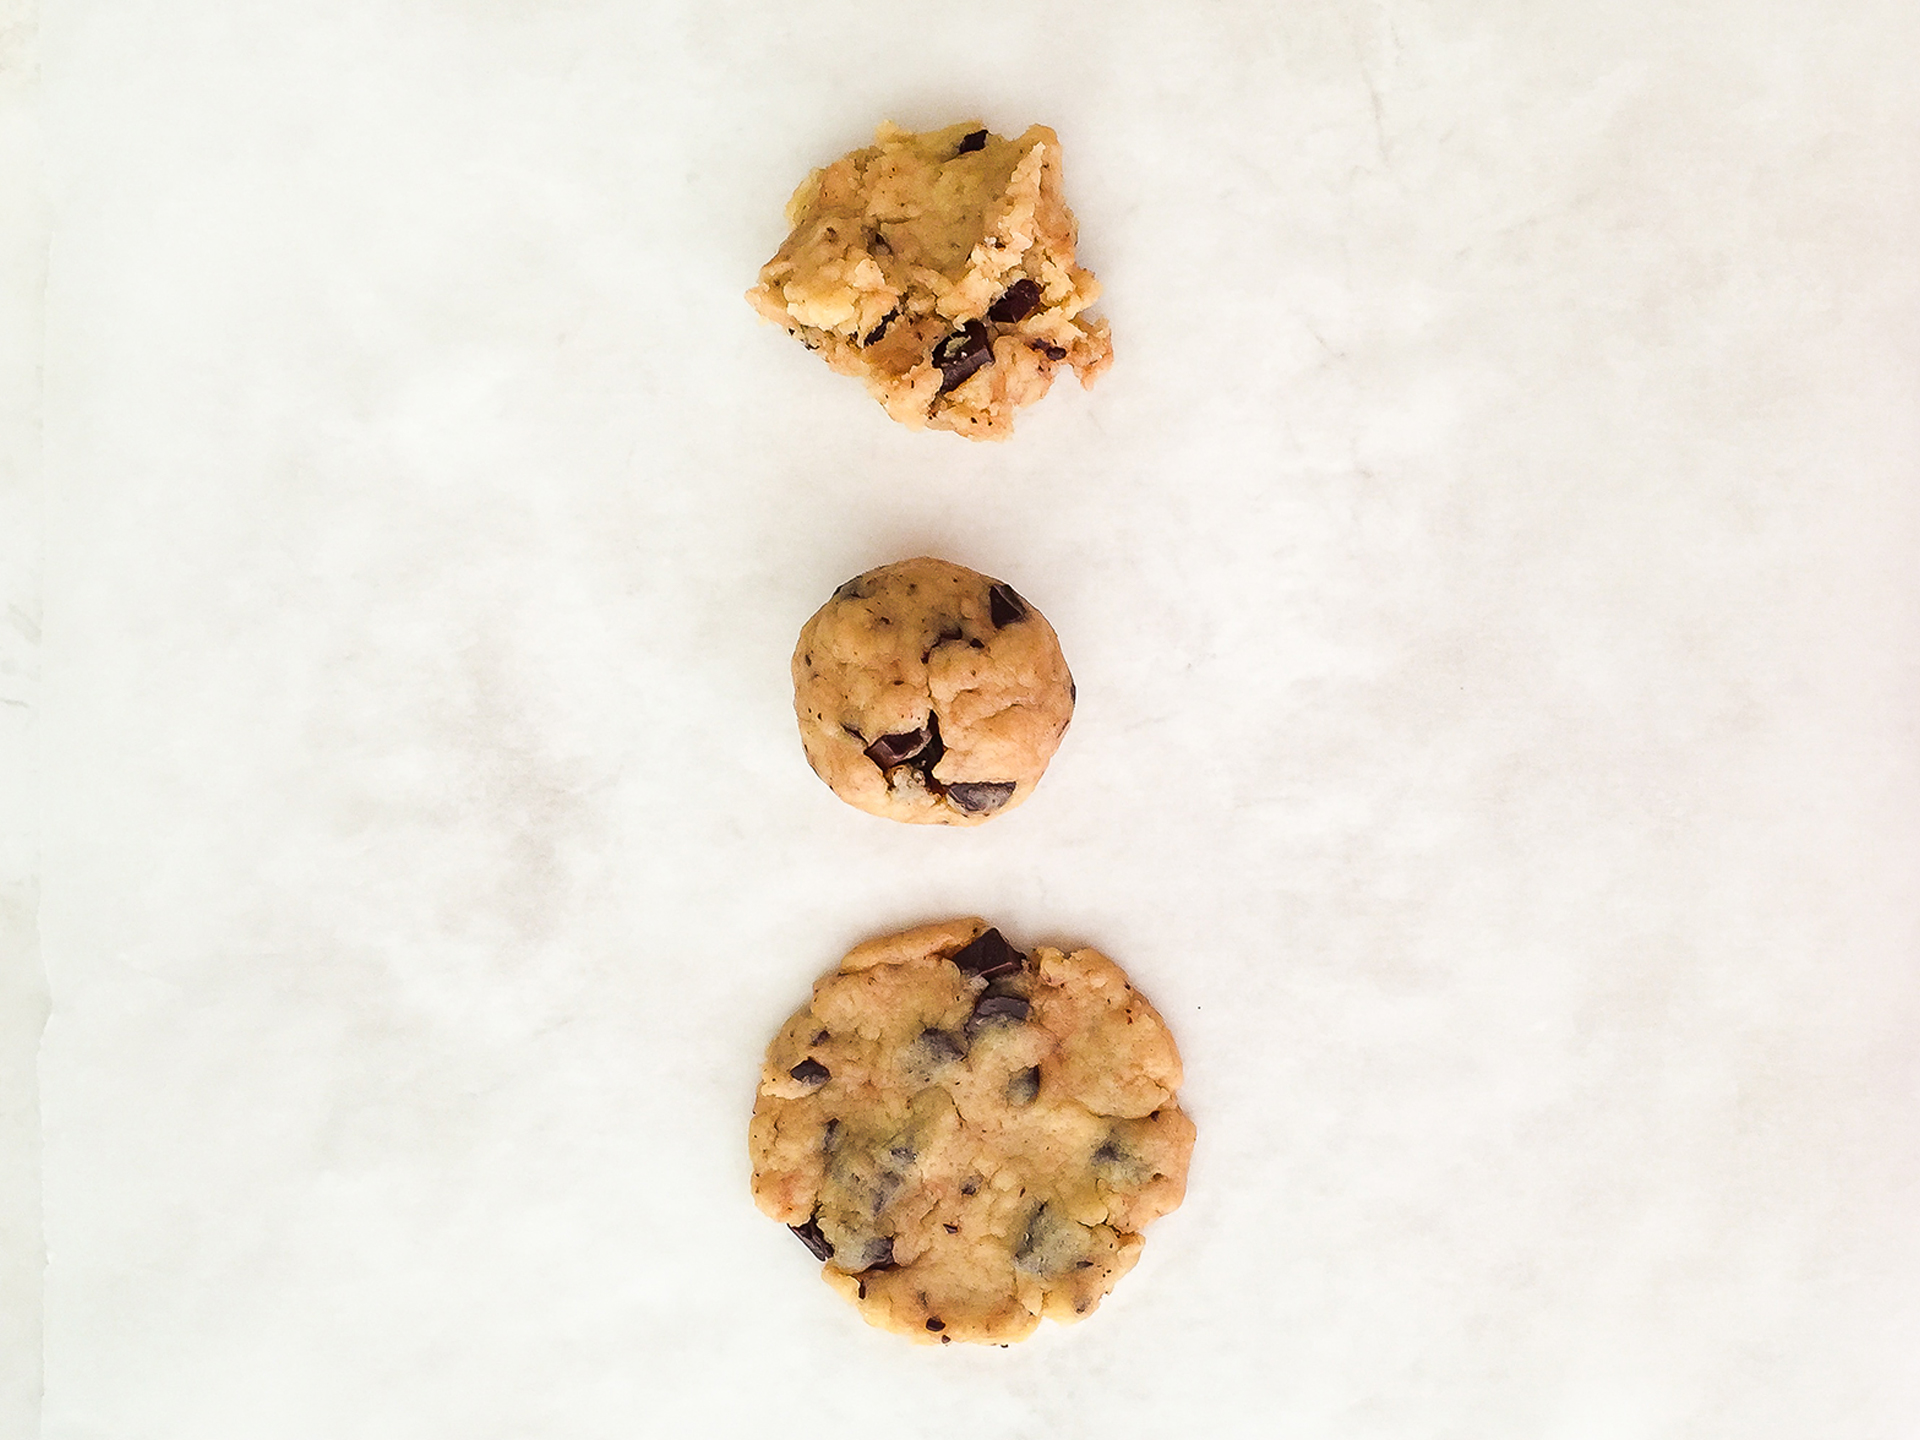 Step 3.1 of Gluten Free Oat Flour Chocolate Chip Cookies